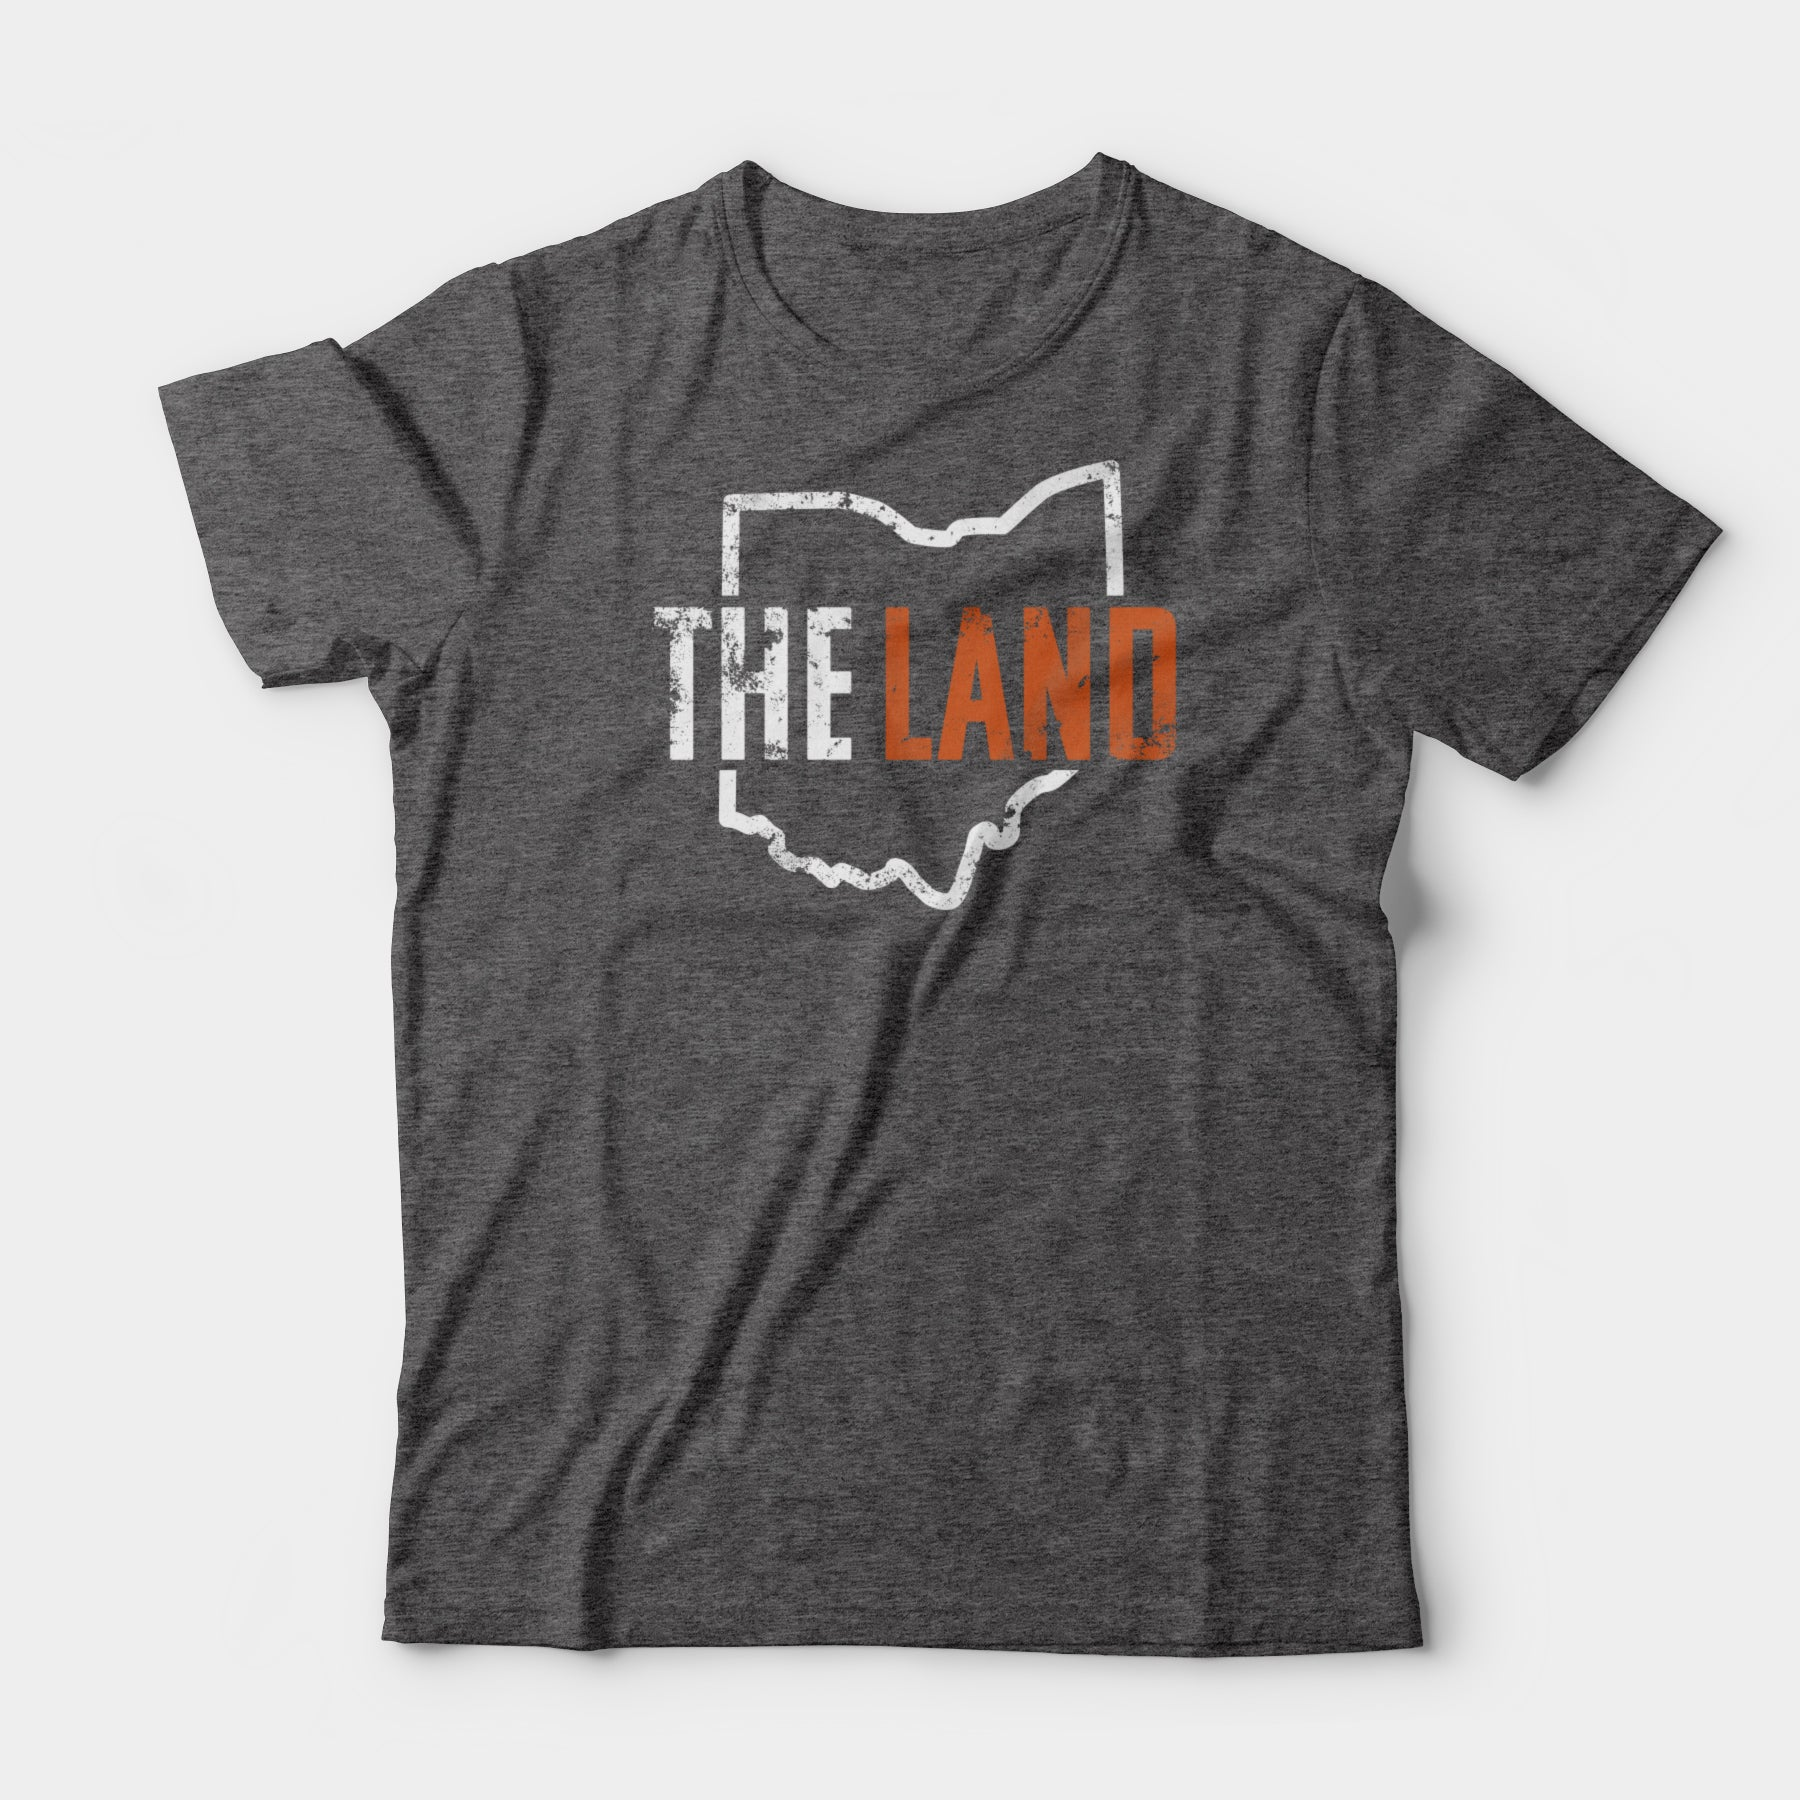 The Land Tee, Charcoal